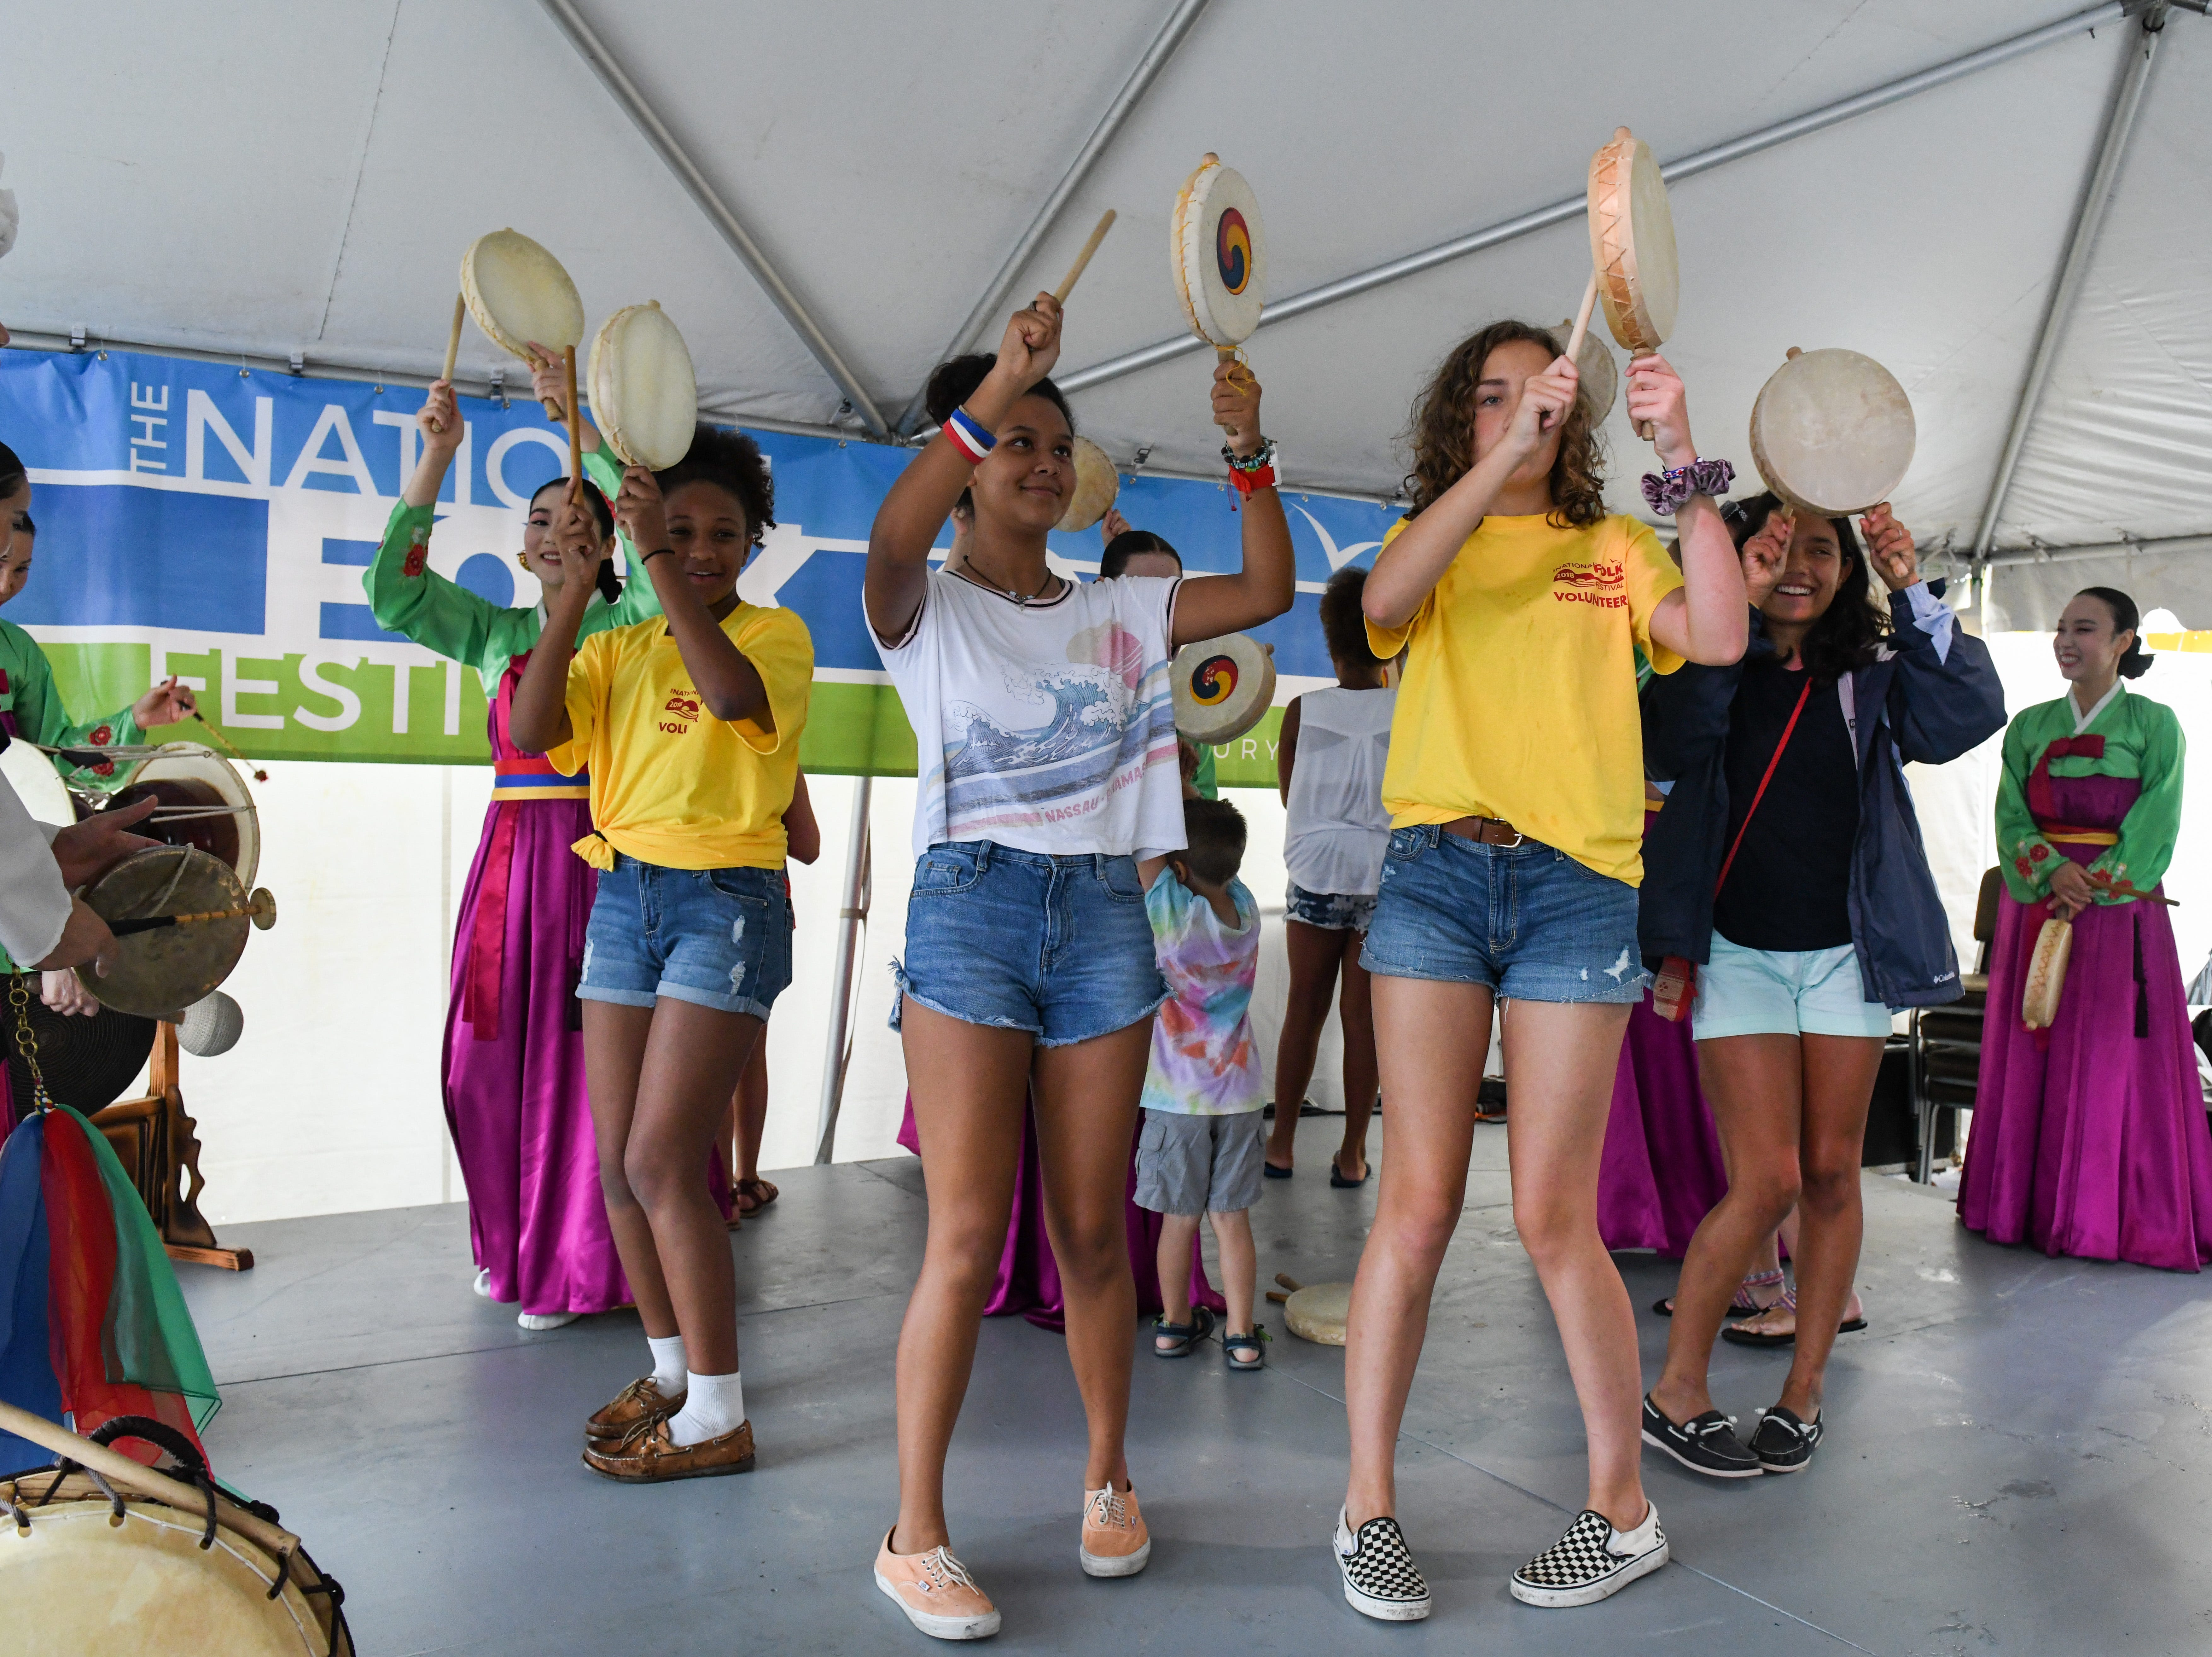 Crowd members learn a dance from the Sounds of Korea group at the National Folk Festival in Salisbury on Saturday, Sept. 8.